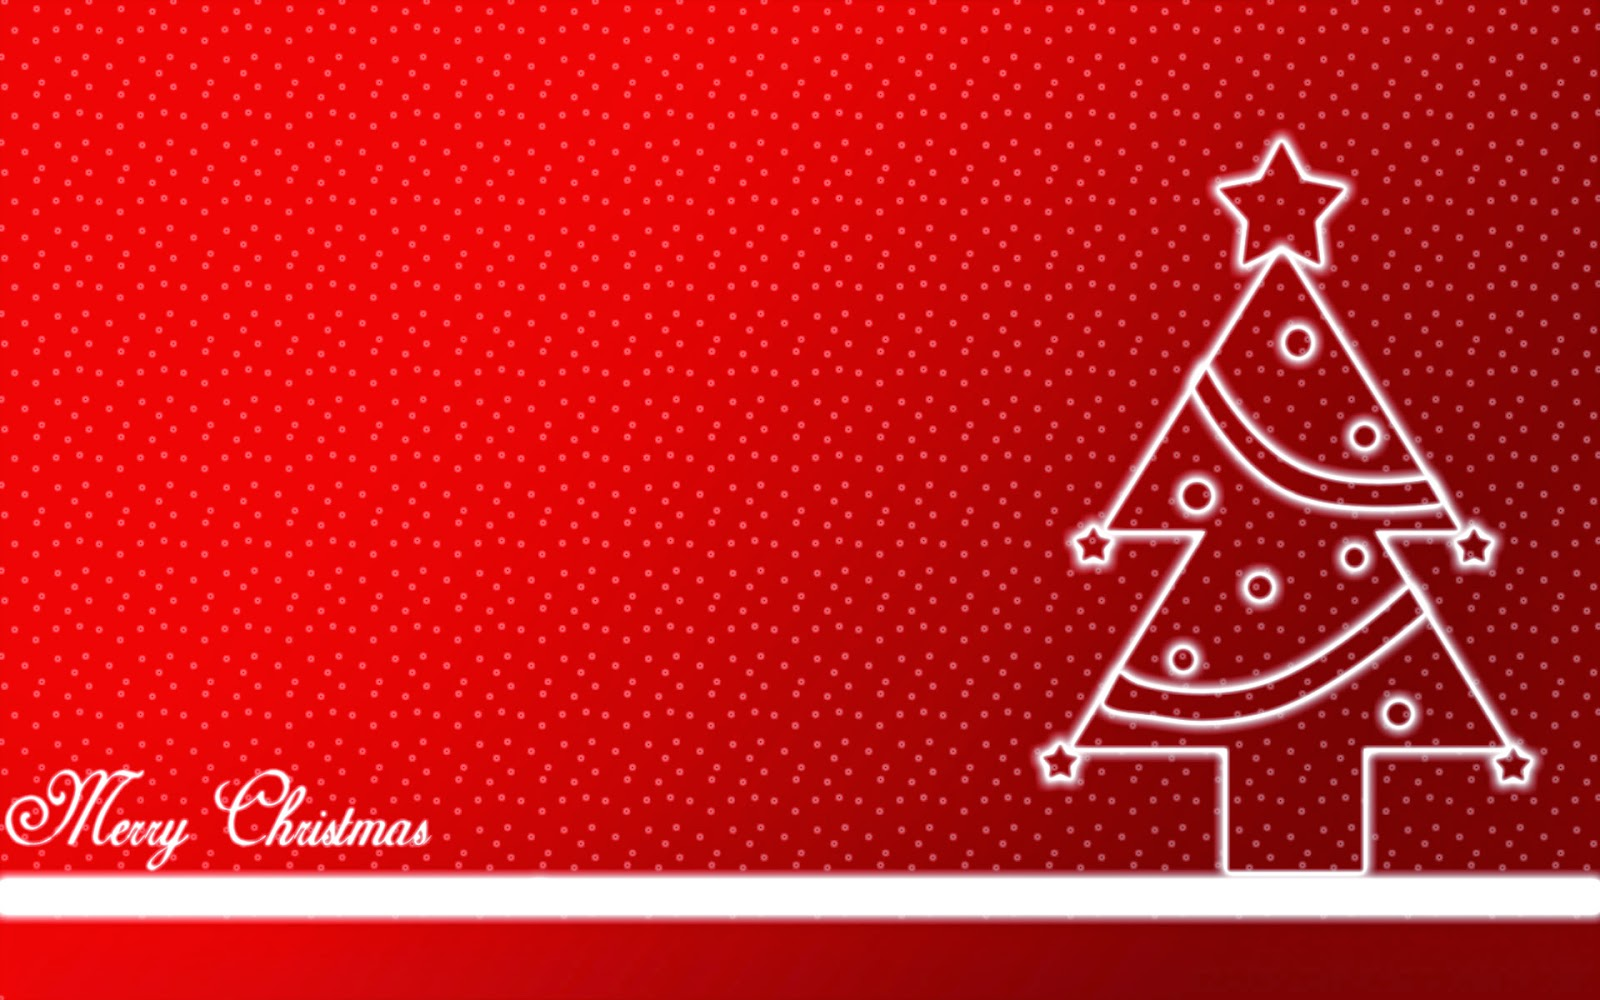 merry-Christmas-design-images-with-xmas-tree-red-BG-white-text-template.jpg